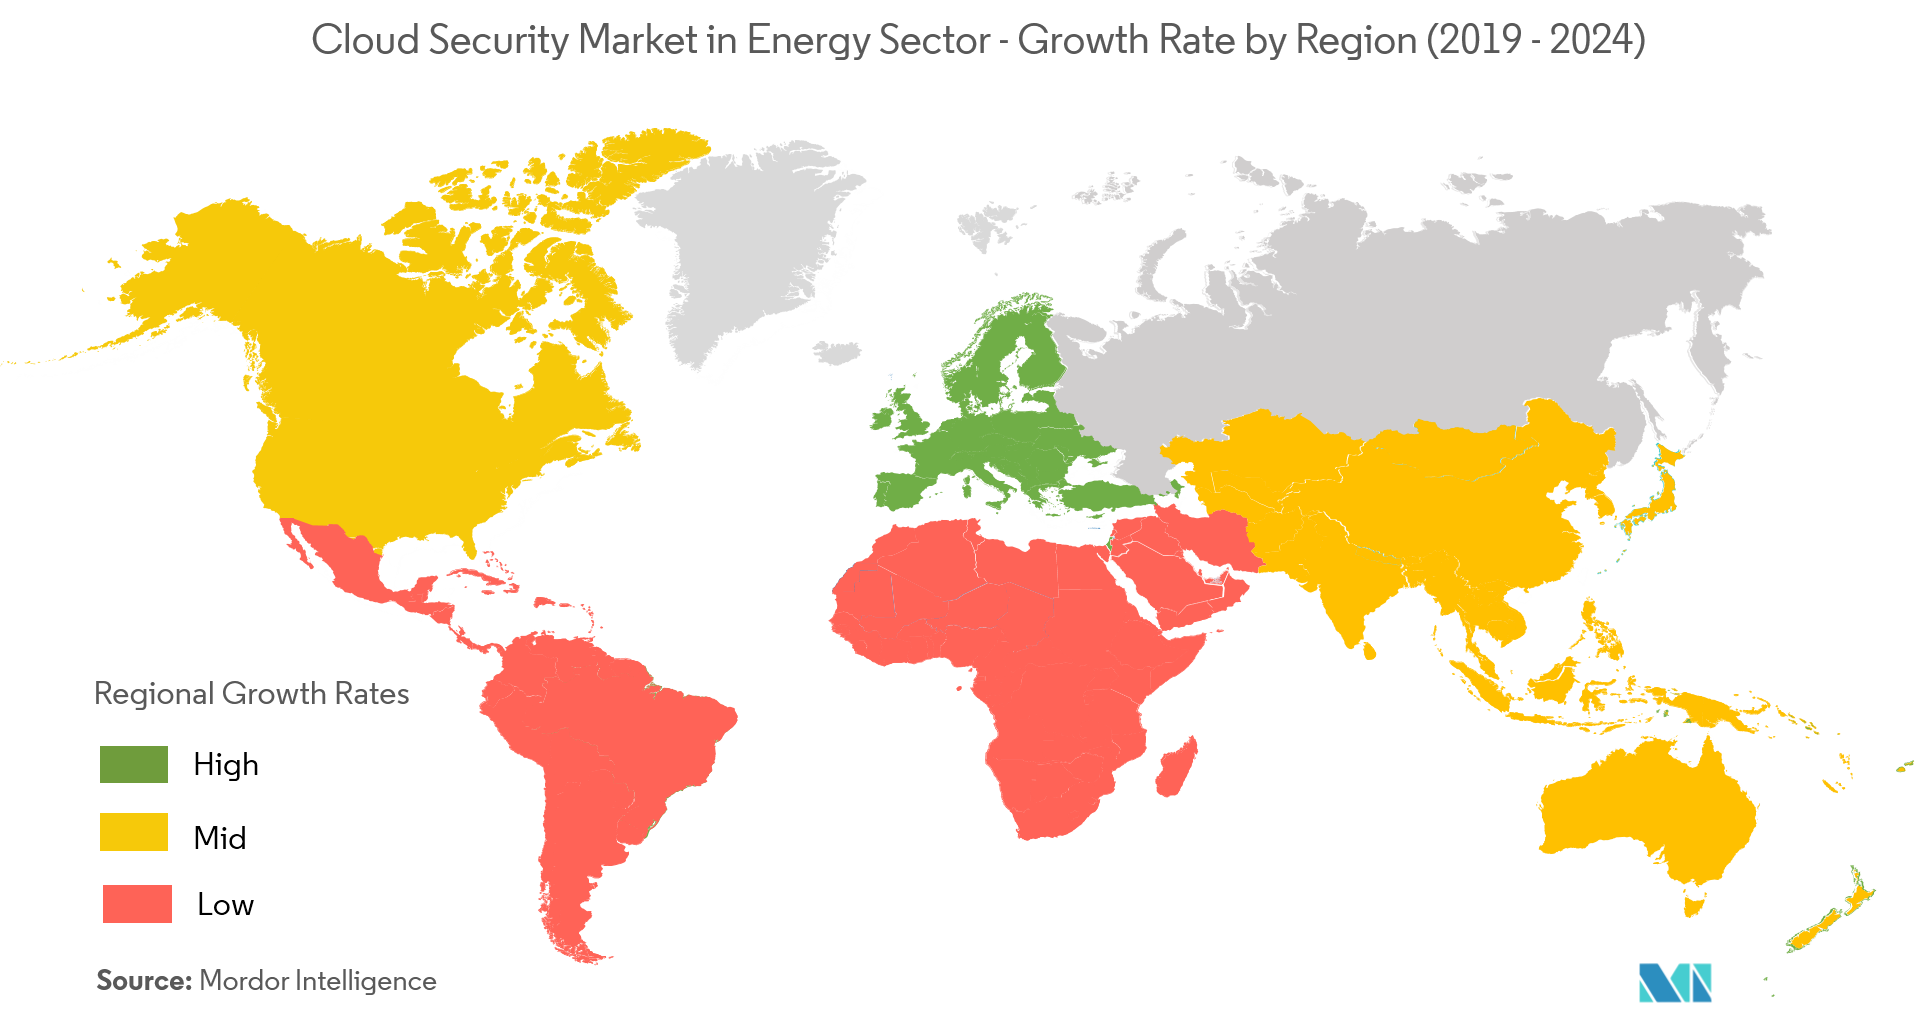 cloud security in energy sector industry